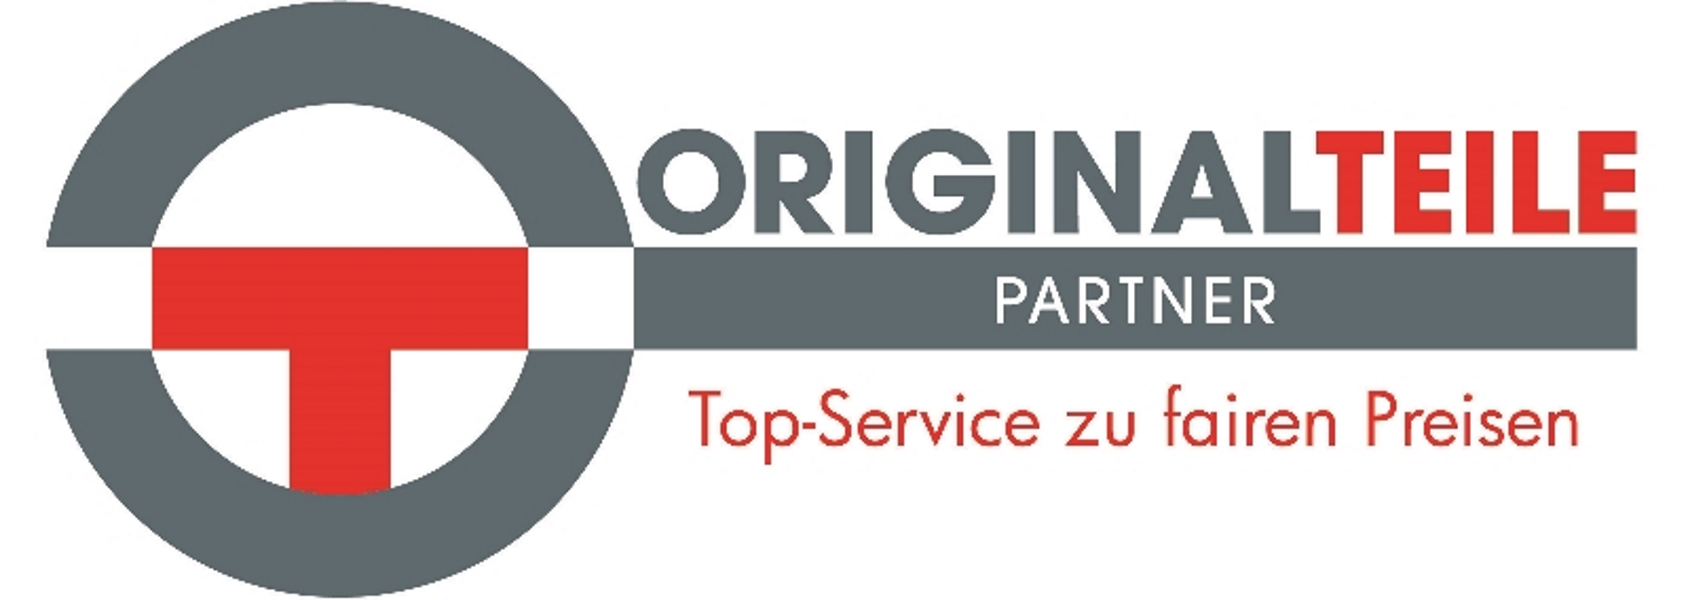 Birner Originalteile Partner Logo 1690x600